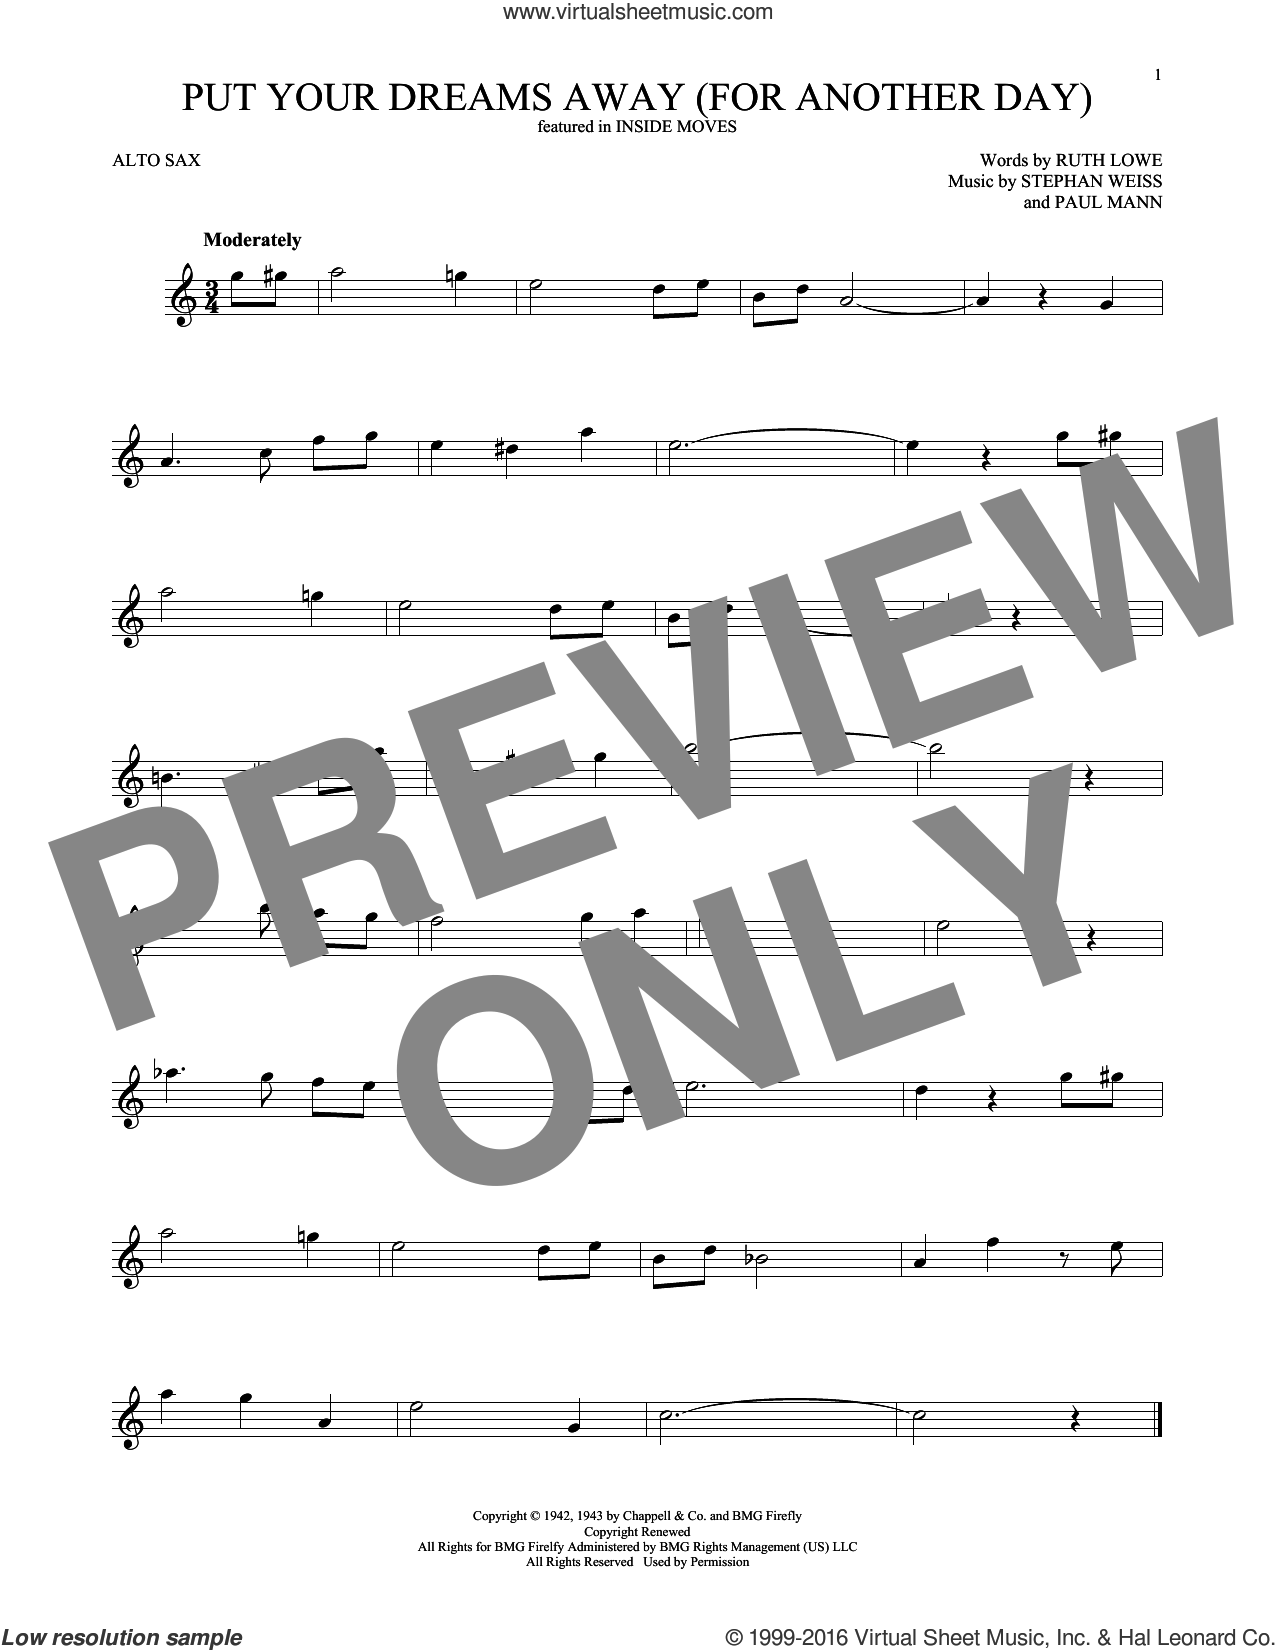 Put Your Dreams Away (For Another Day) sheet music for alto saxophone solo ( Sax) by Stephen Weiss, Frank Sinatra and Ruth Lowe. Score Image Preview.